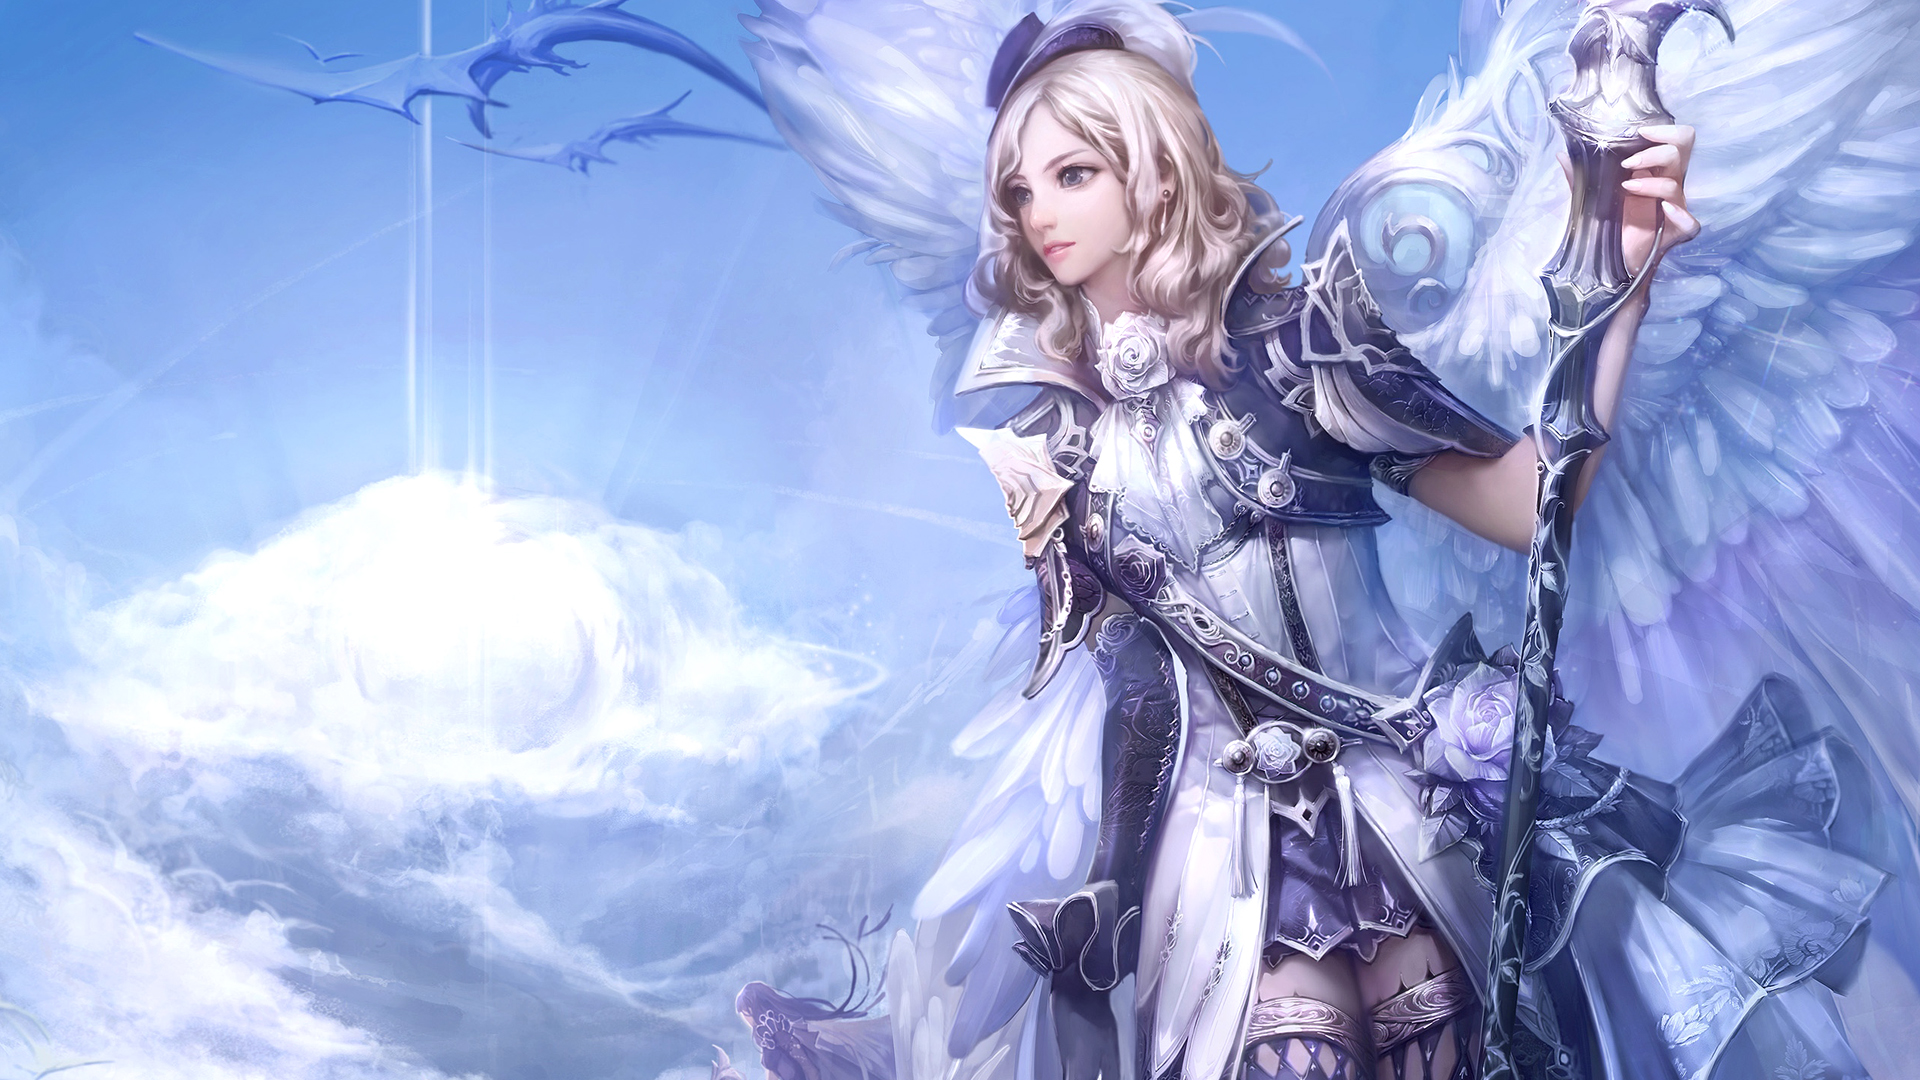 Aion 1920x1080 2   hebusorg   High Definition Wallpapers   HD 1920x1080